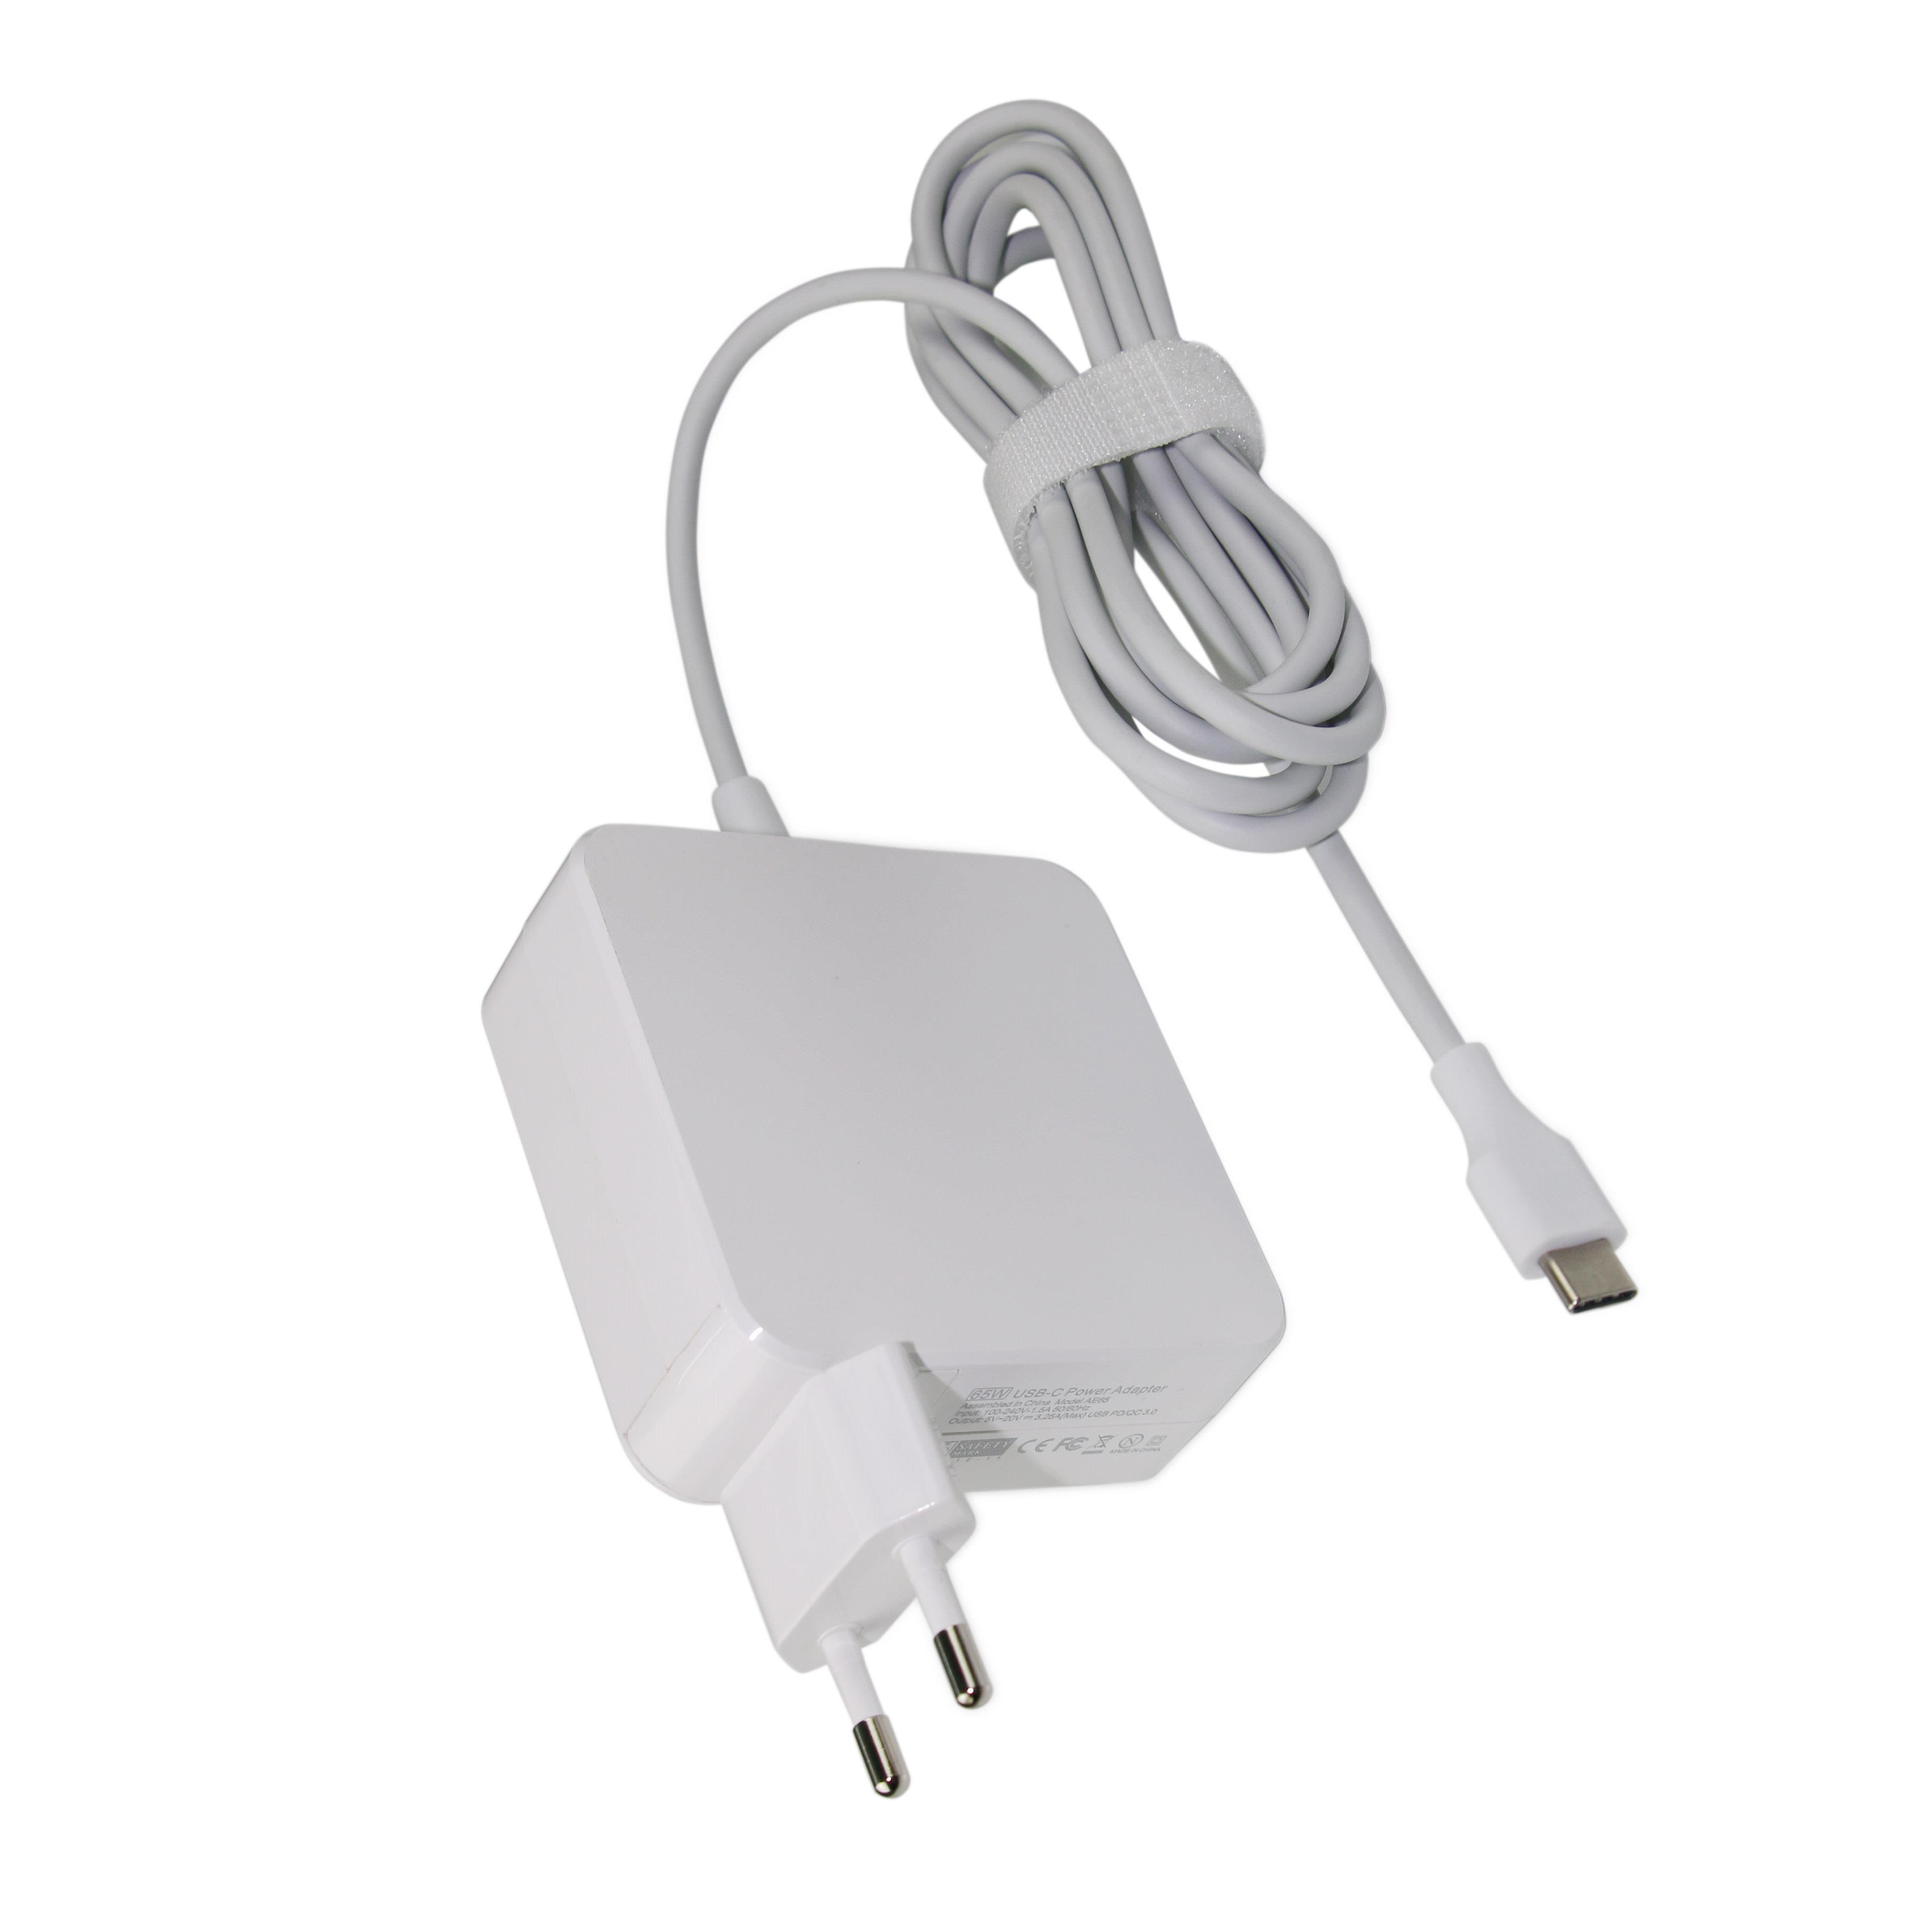 Type-C 87W Charger for Laptop USB C